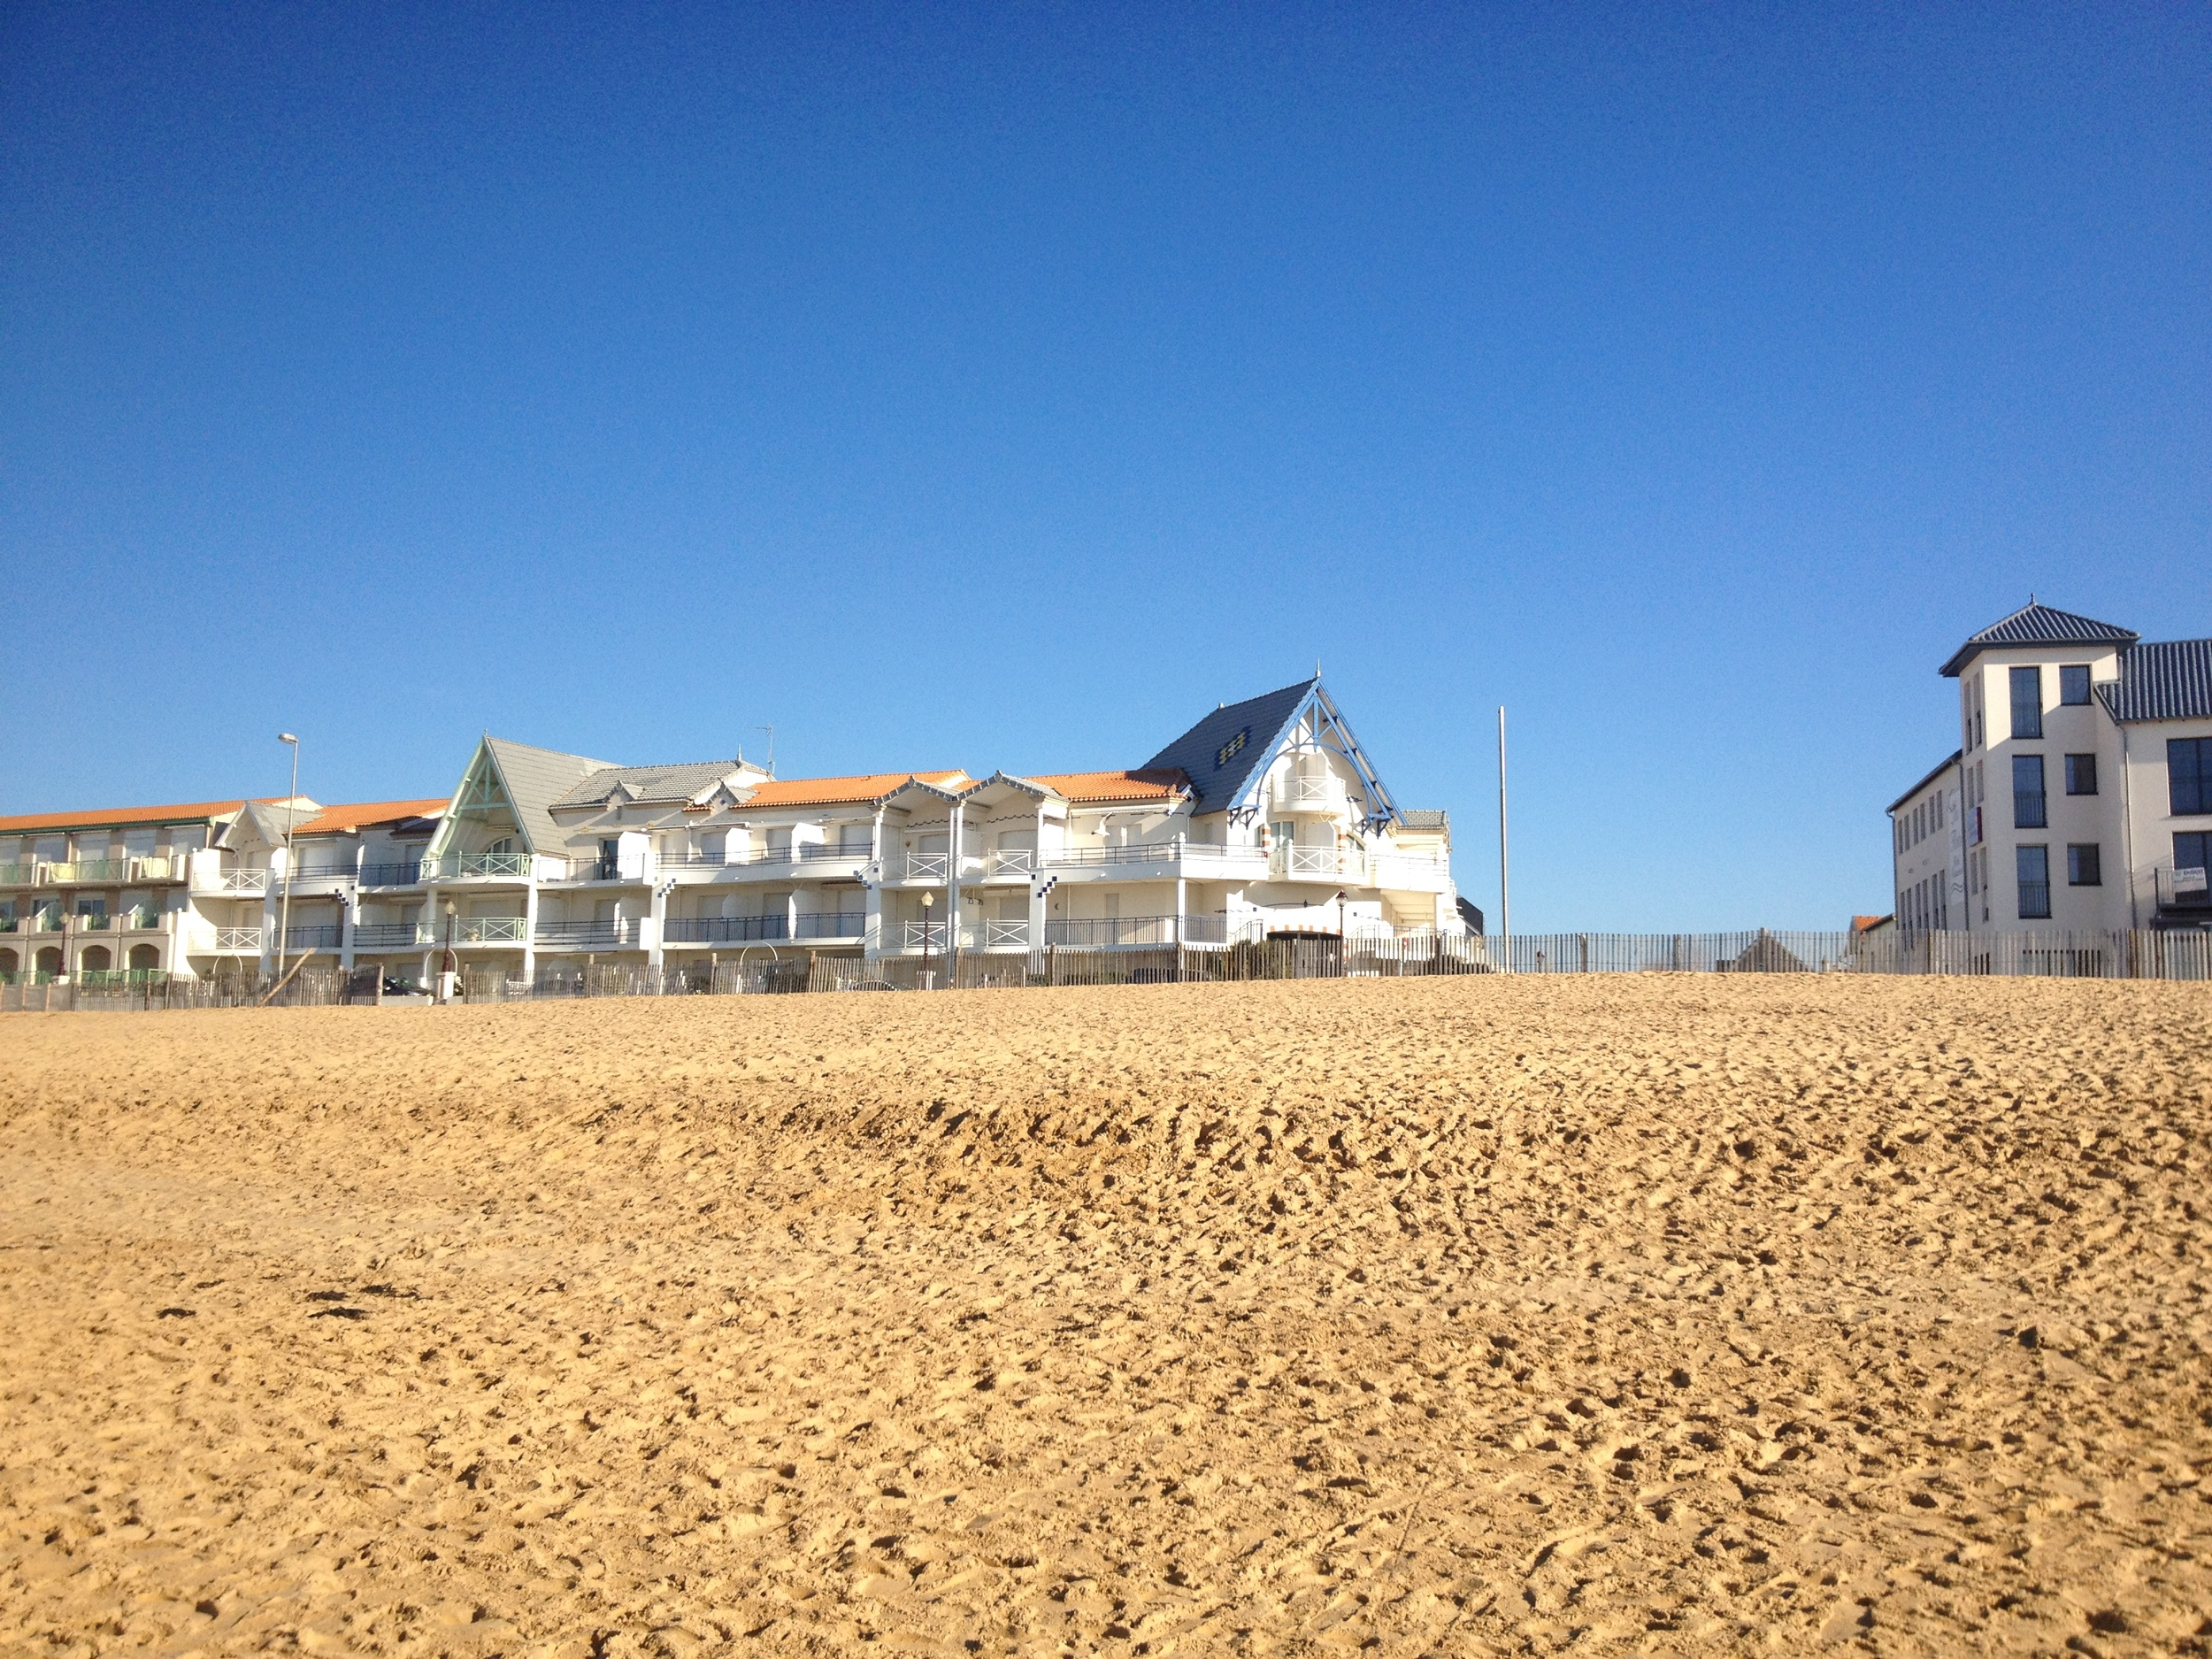 Unbroken blue skies and golden sands - a perfect summer's day? No - January 1st 2015!